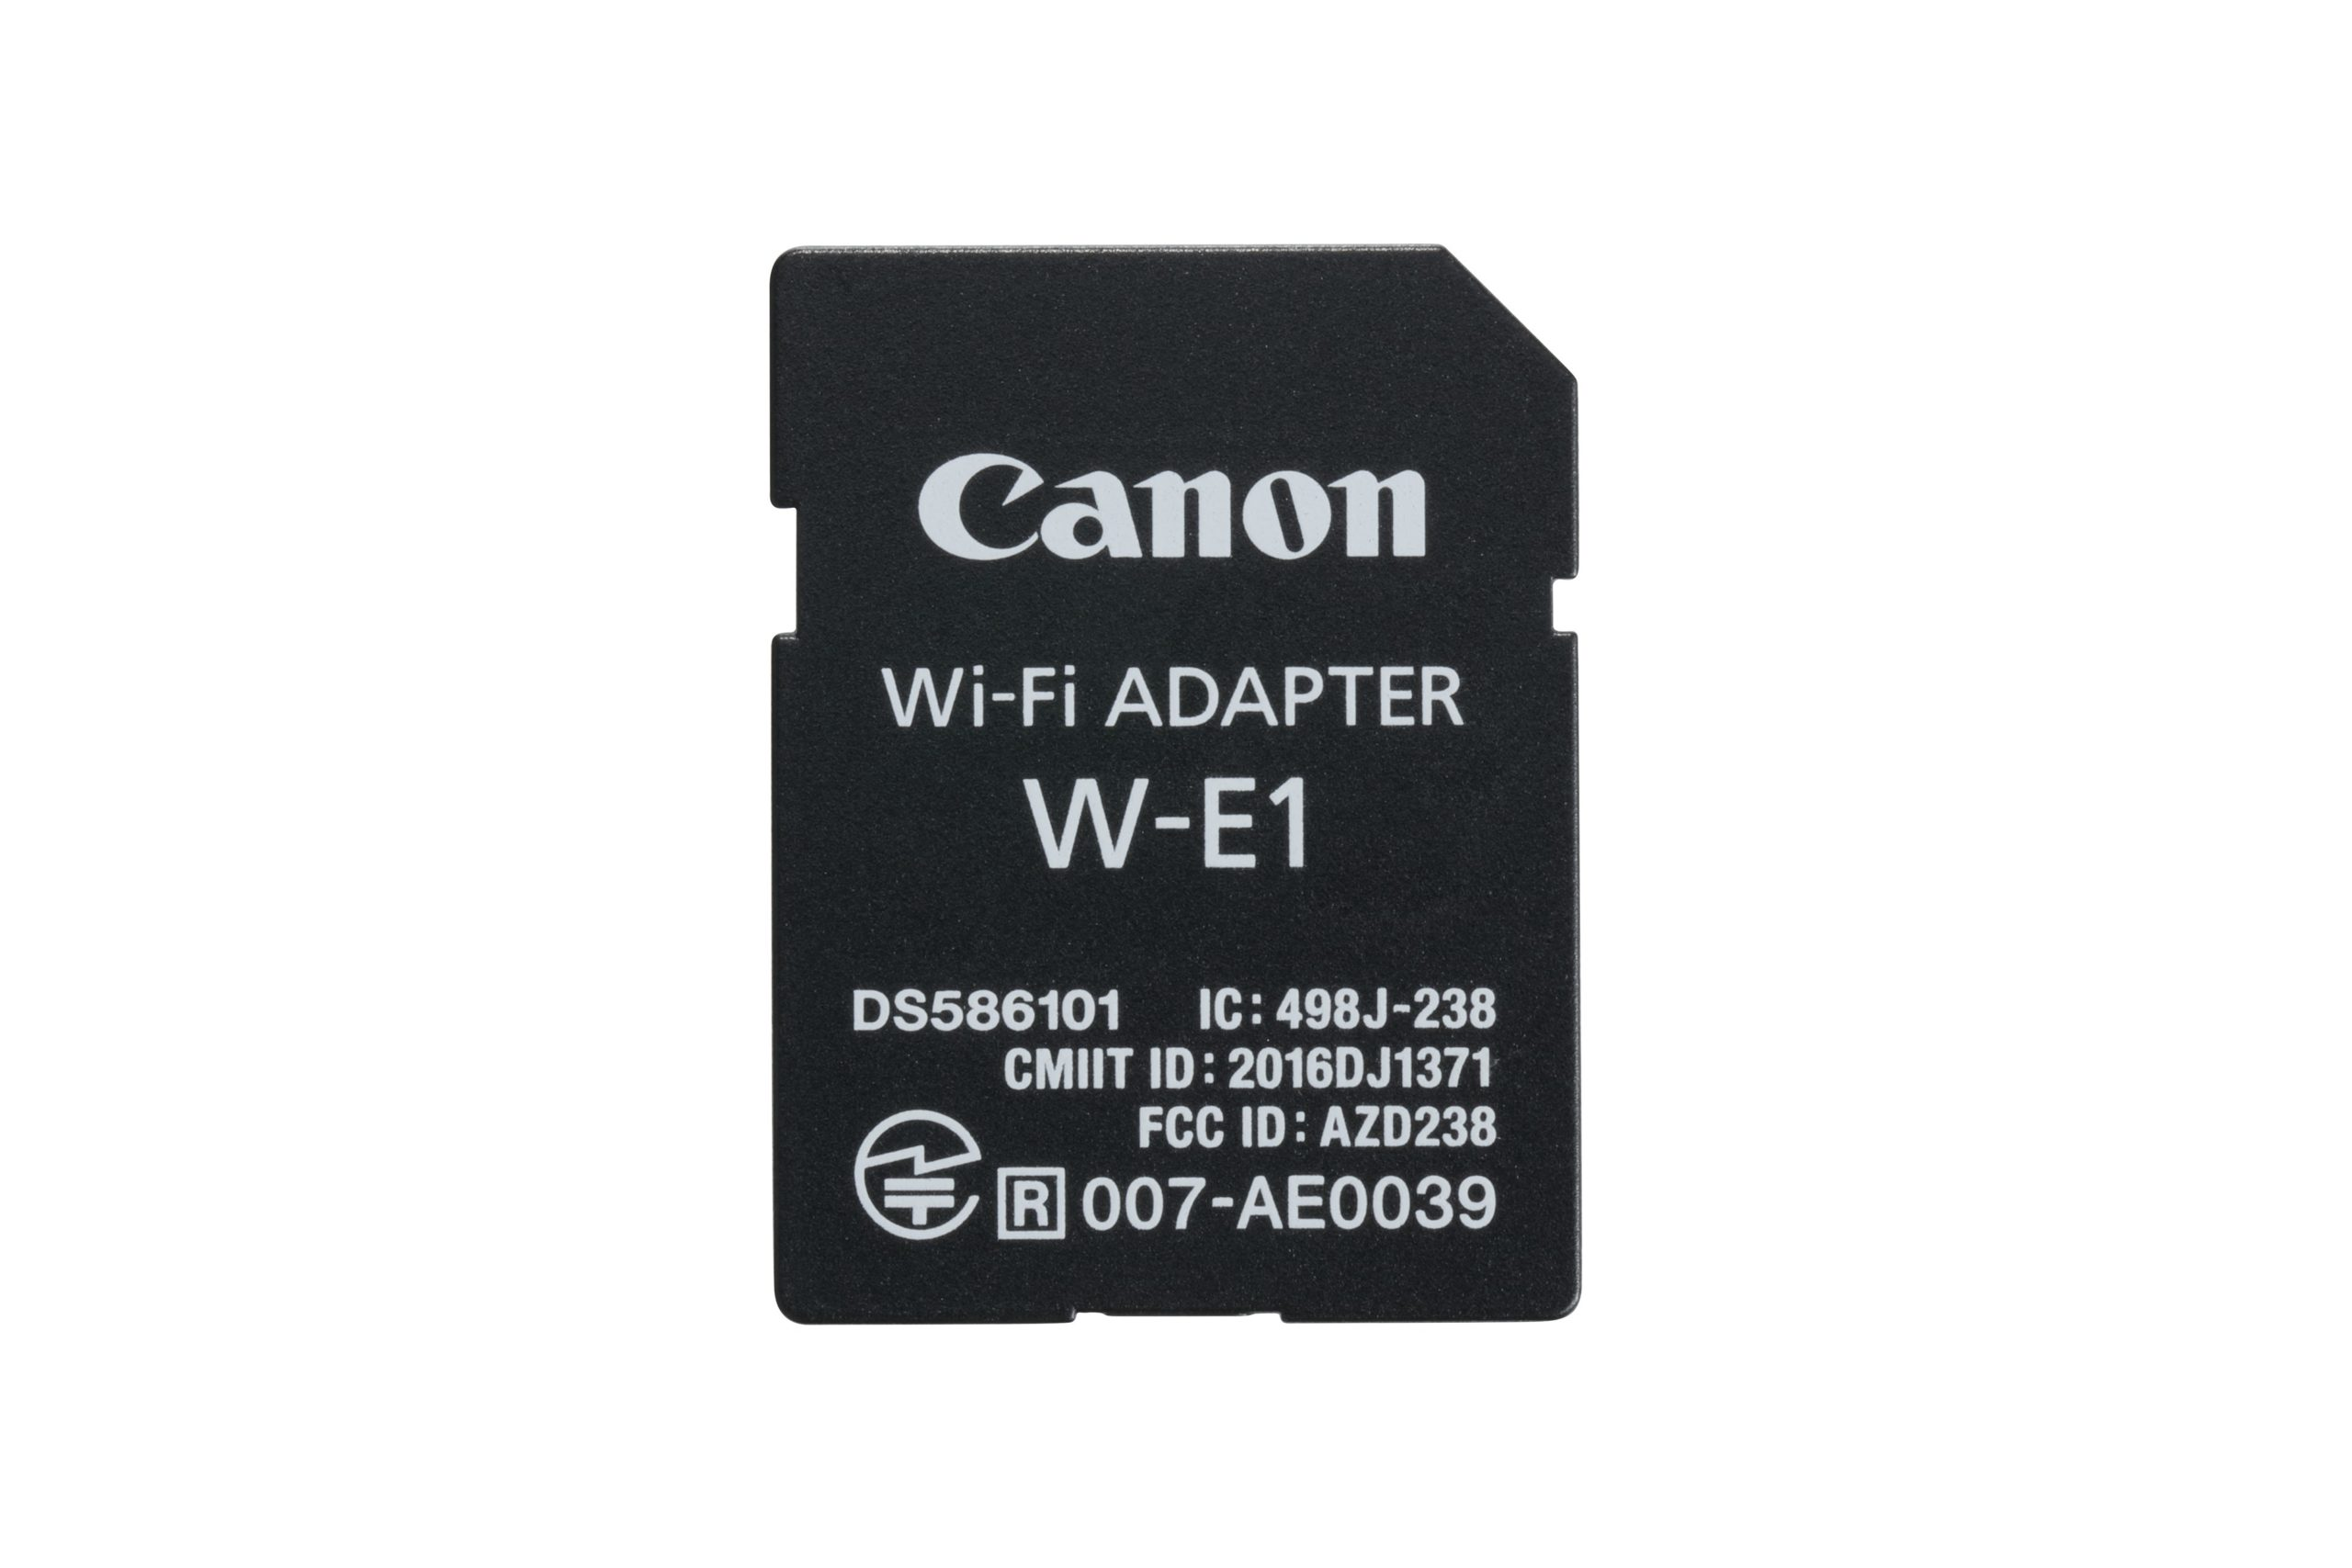 Wi-Fi Adapter W-E1 FRT